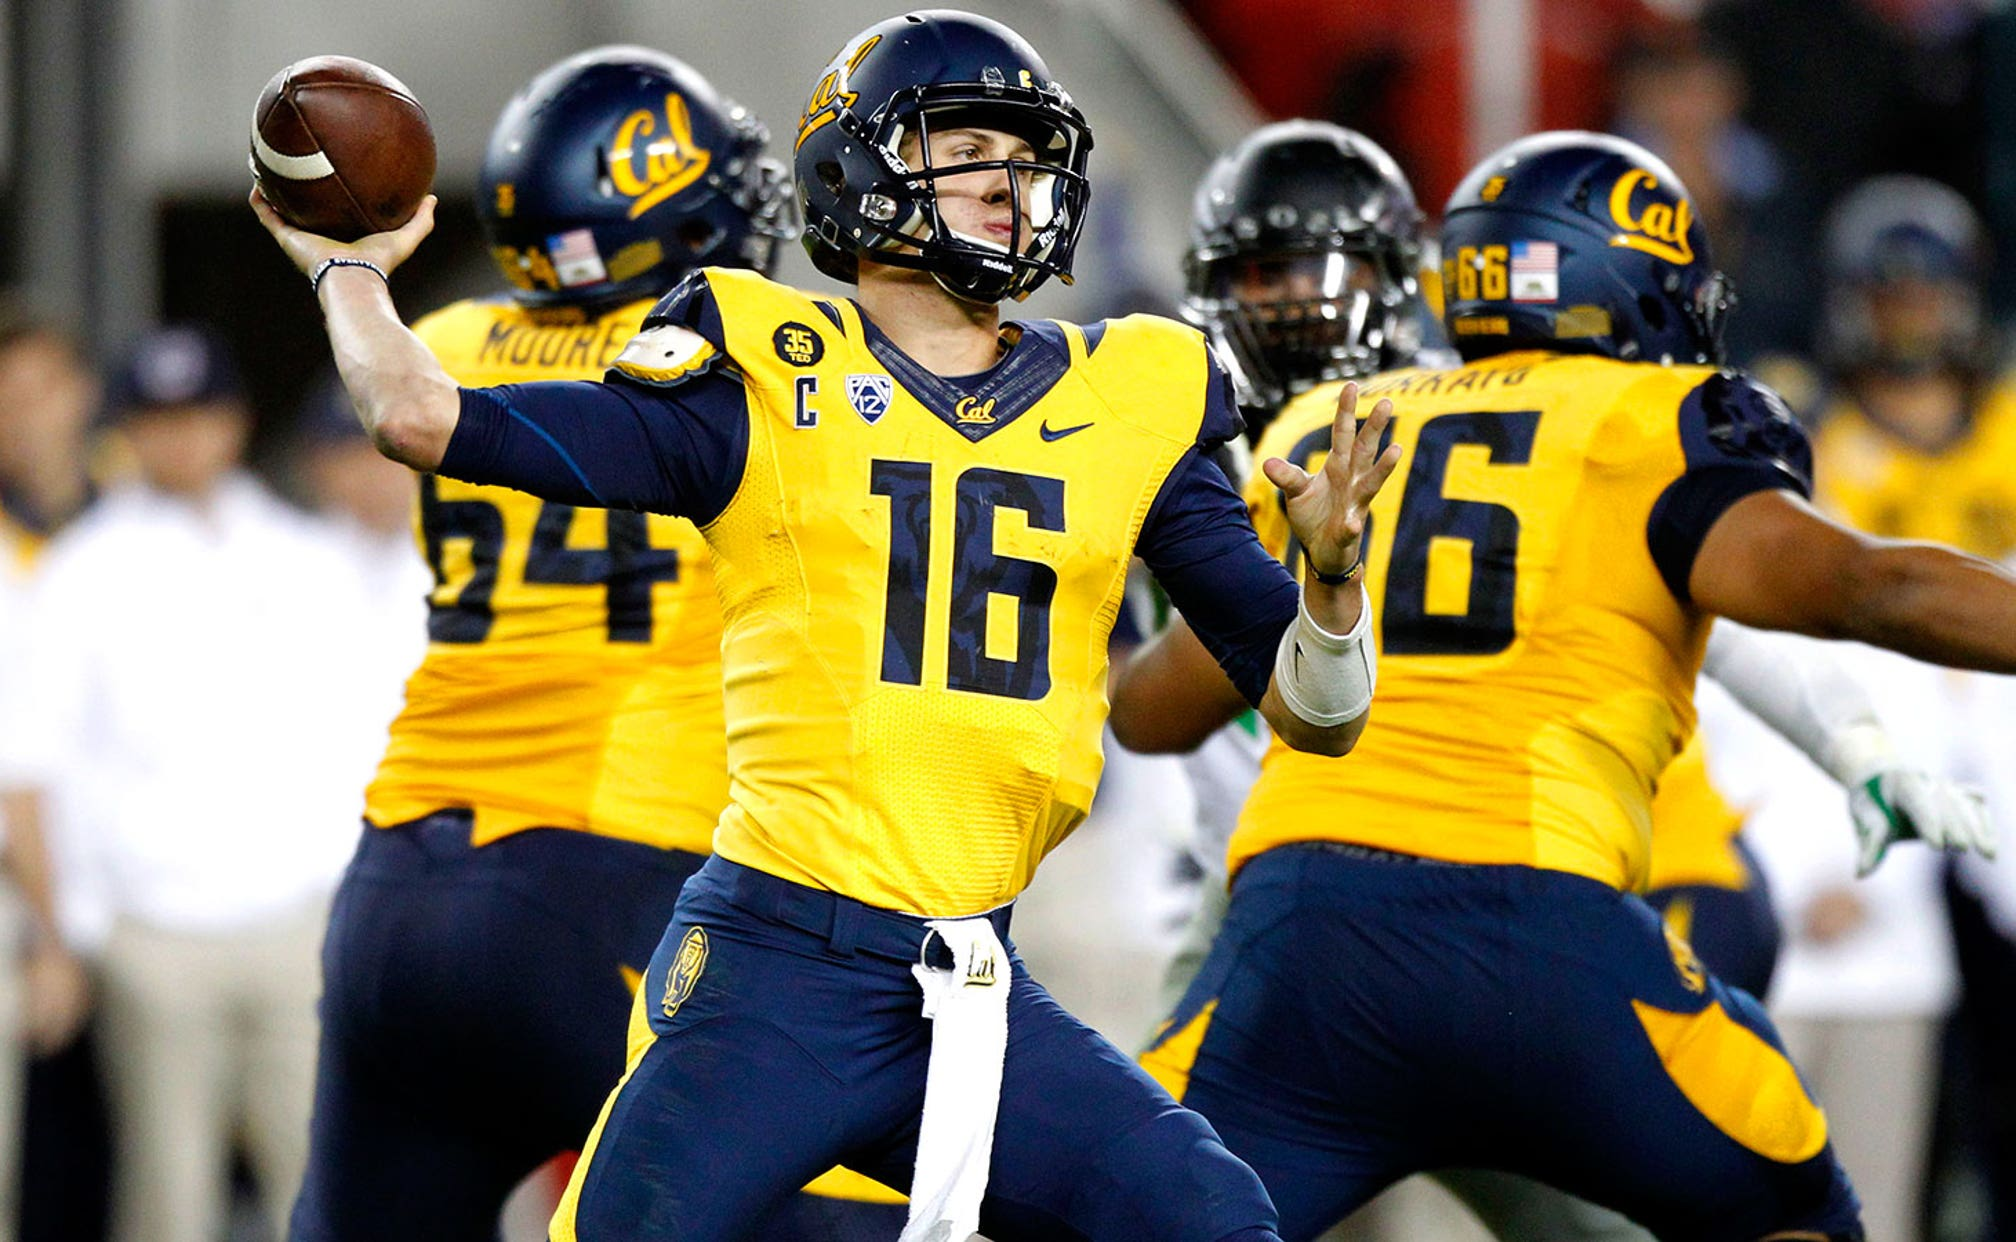 Qb Jared Goff Breaks Cal S All Time Records For Passing Yards Completions Total Offense Fox Sports